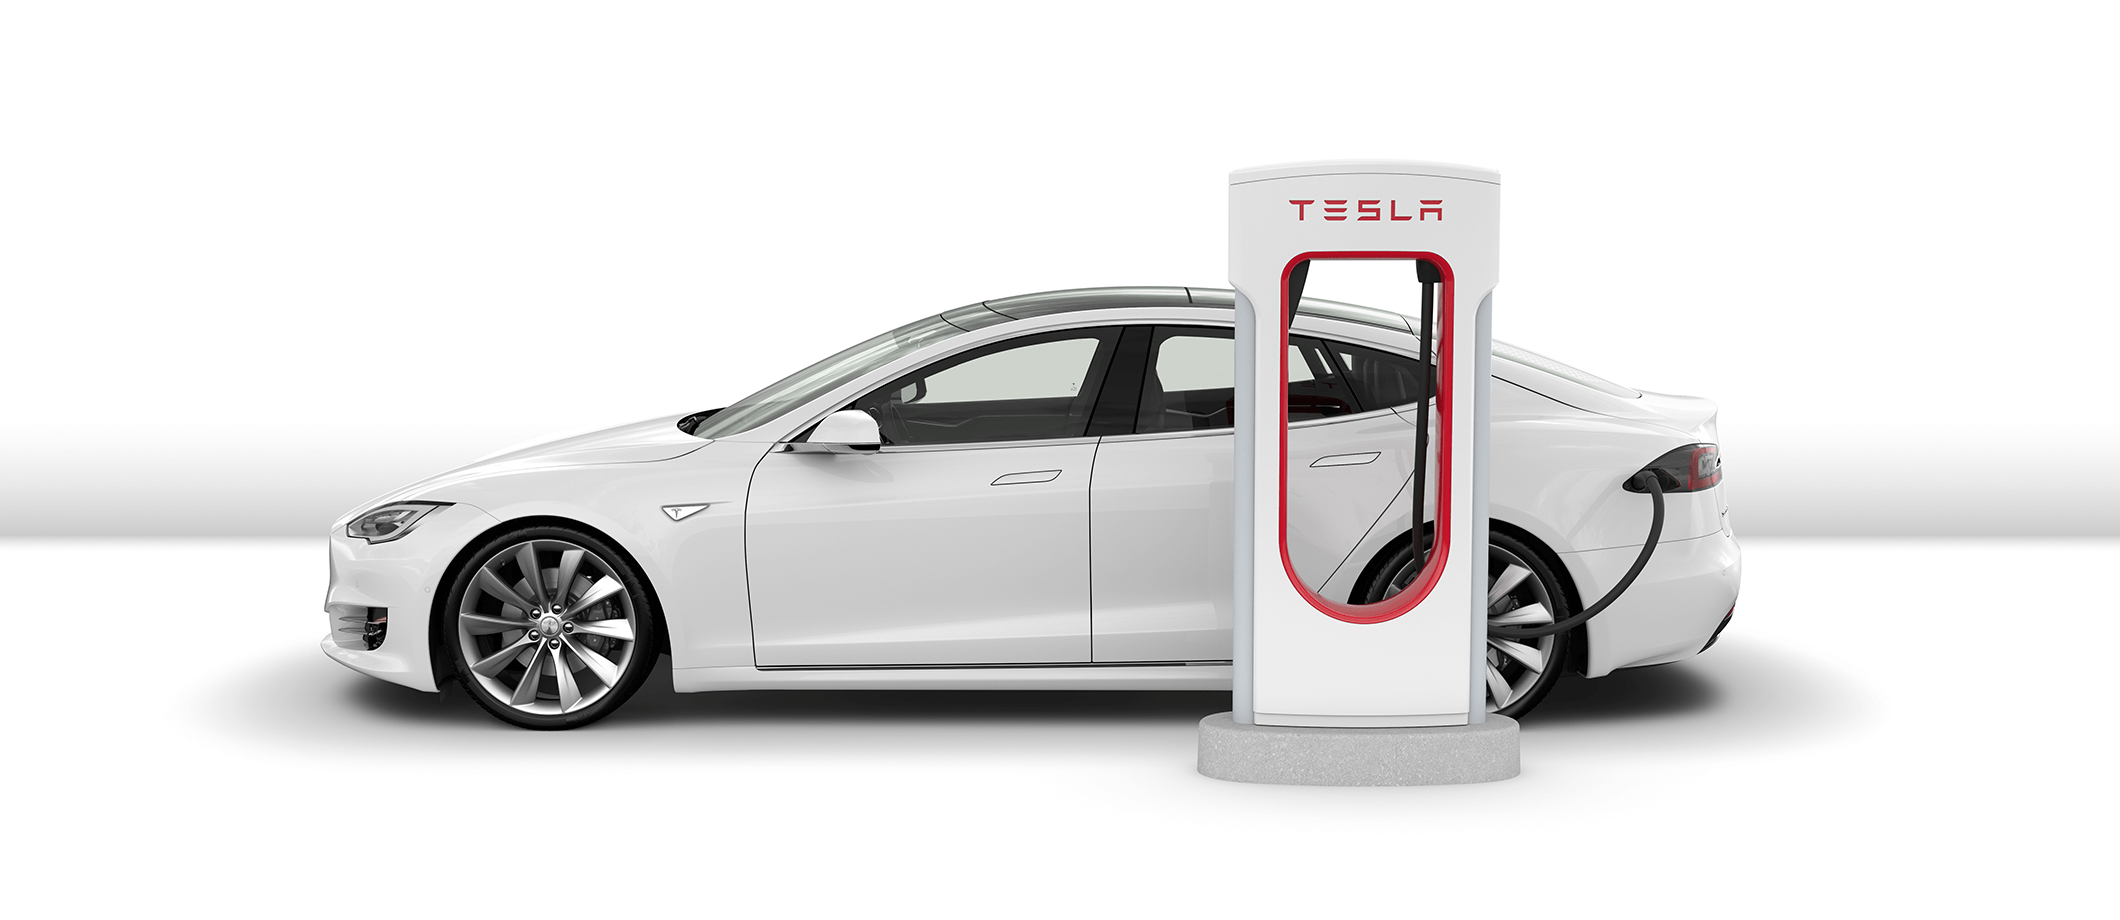 Tesla Supercharger Idling Fee Set For 0 4 Per Minute